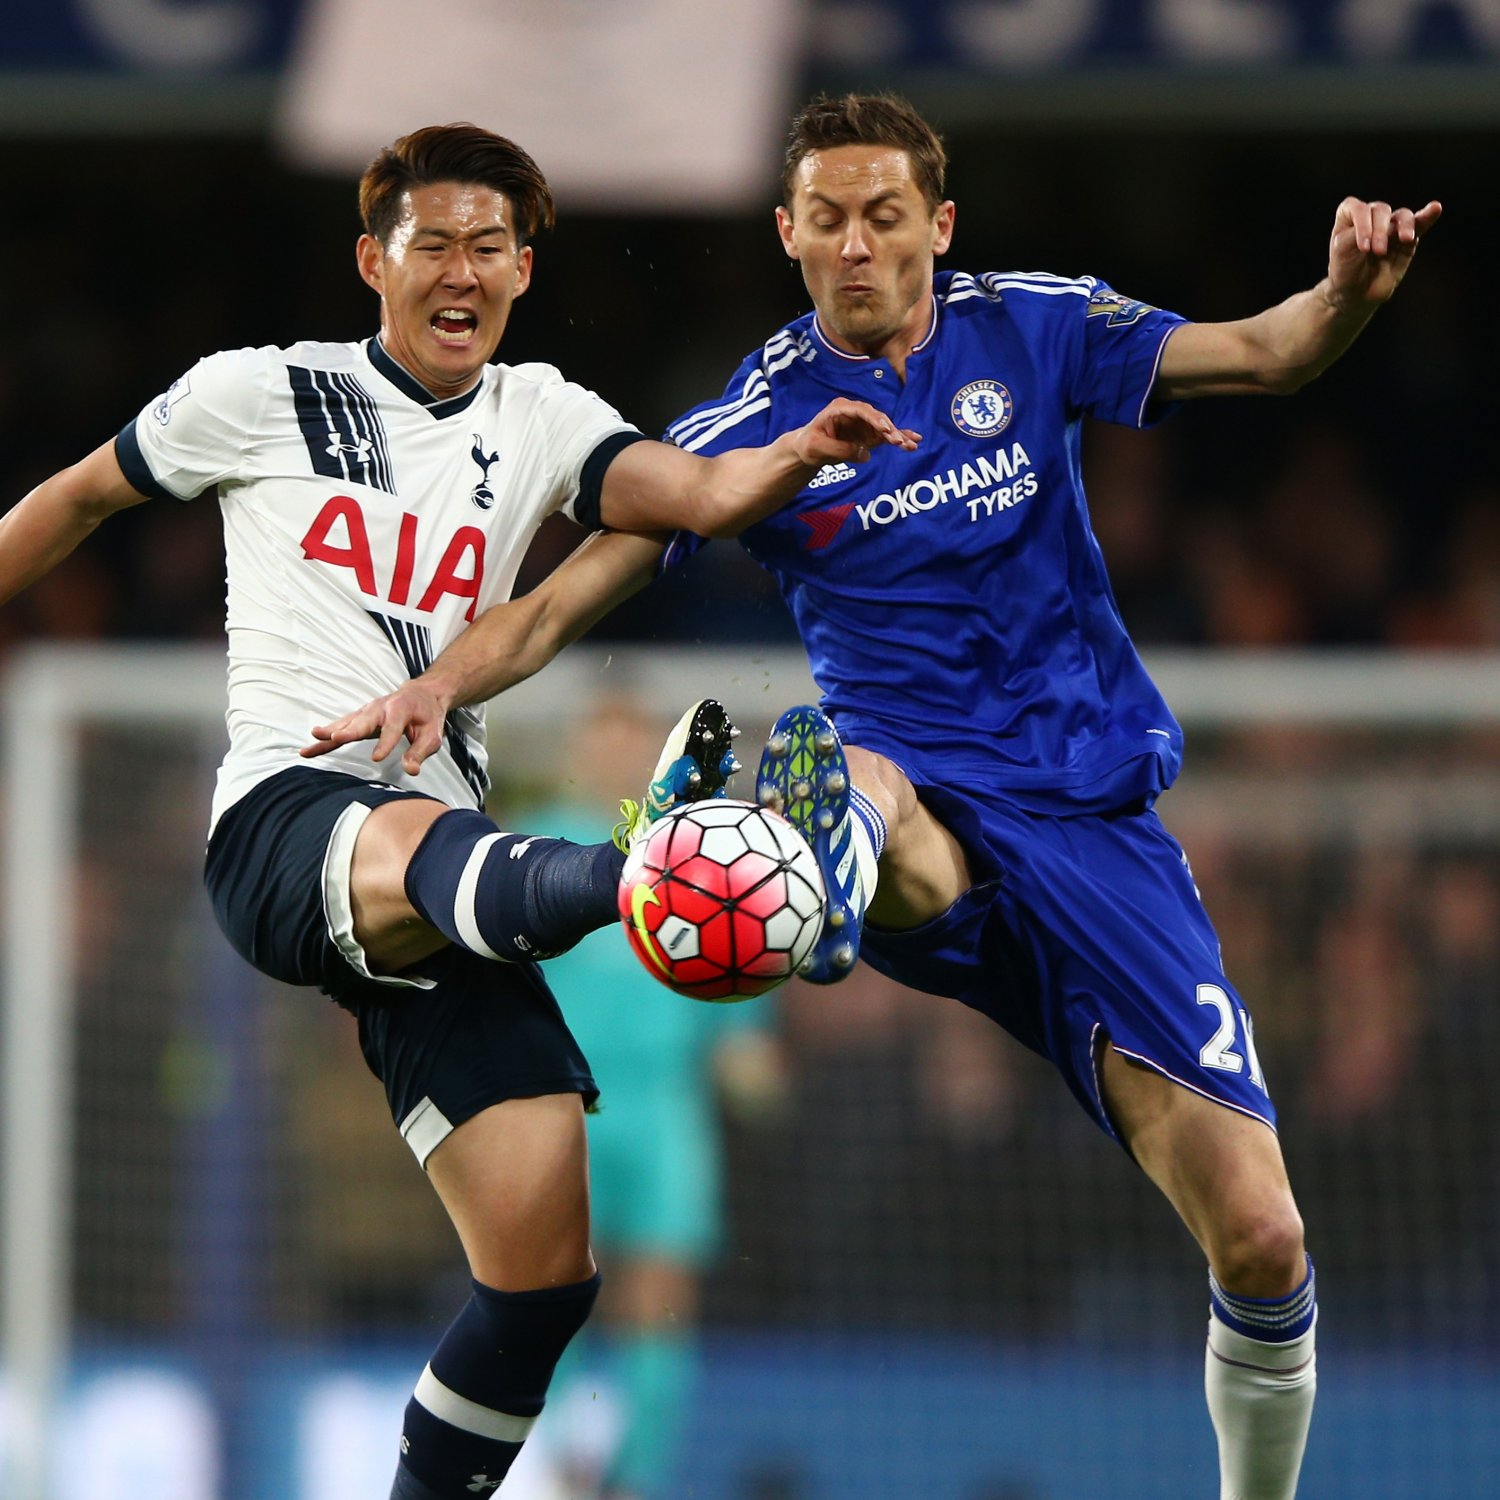 Chelsea Vs Tottenham Score Reaction From 2016 Premier: Chelsea Vs. Tottenham Hotspur: Live Score, Highlights From